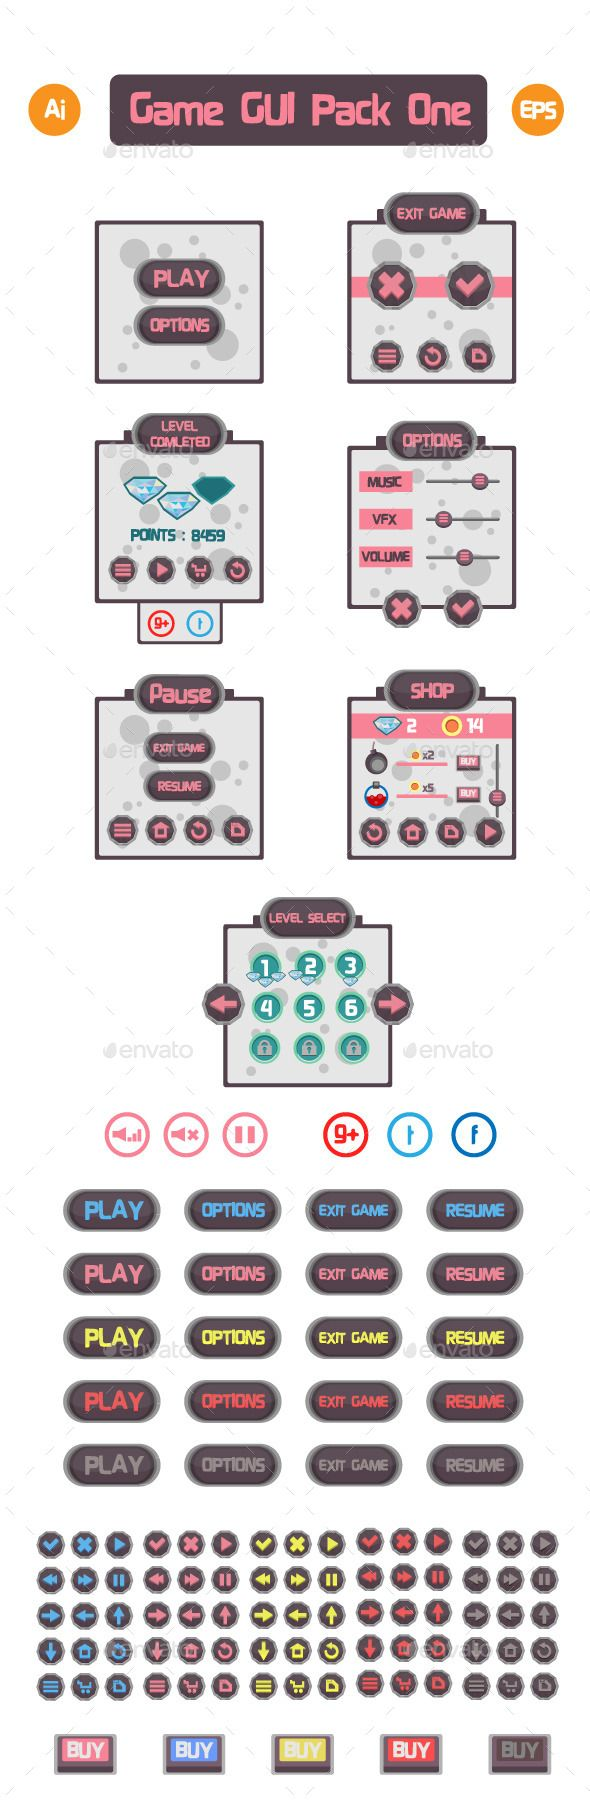 Game Gui Pack Vector EPS, AI Illustrator. Download here: https://graphicriver.net/item/game-gui-pack-one/10681162?ref=ksioks